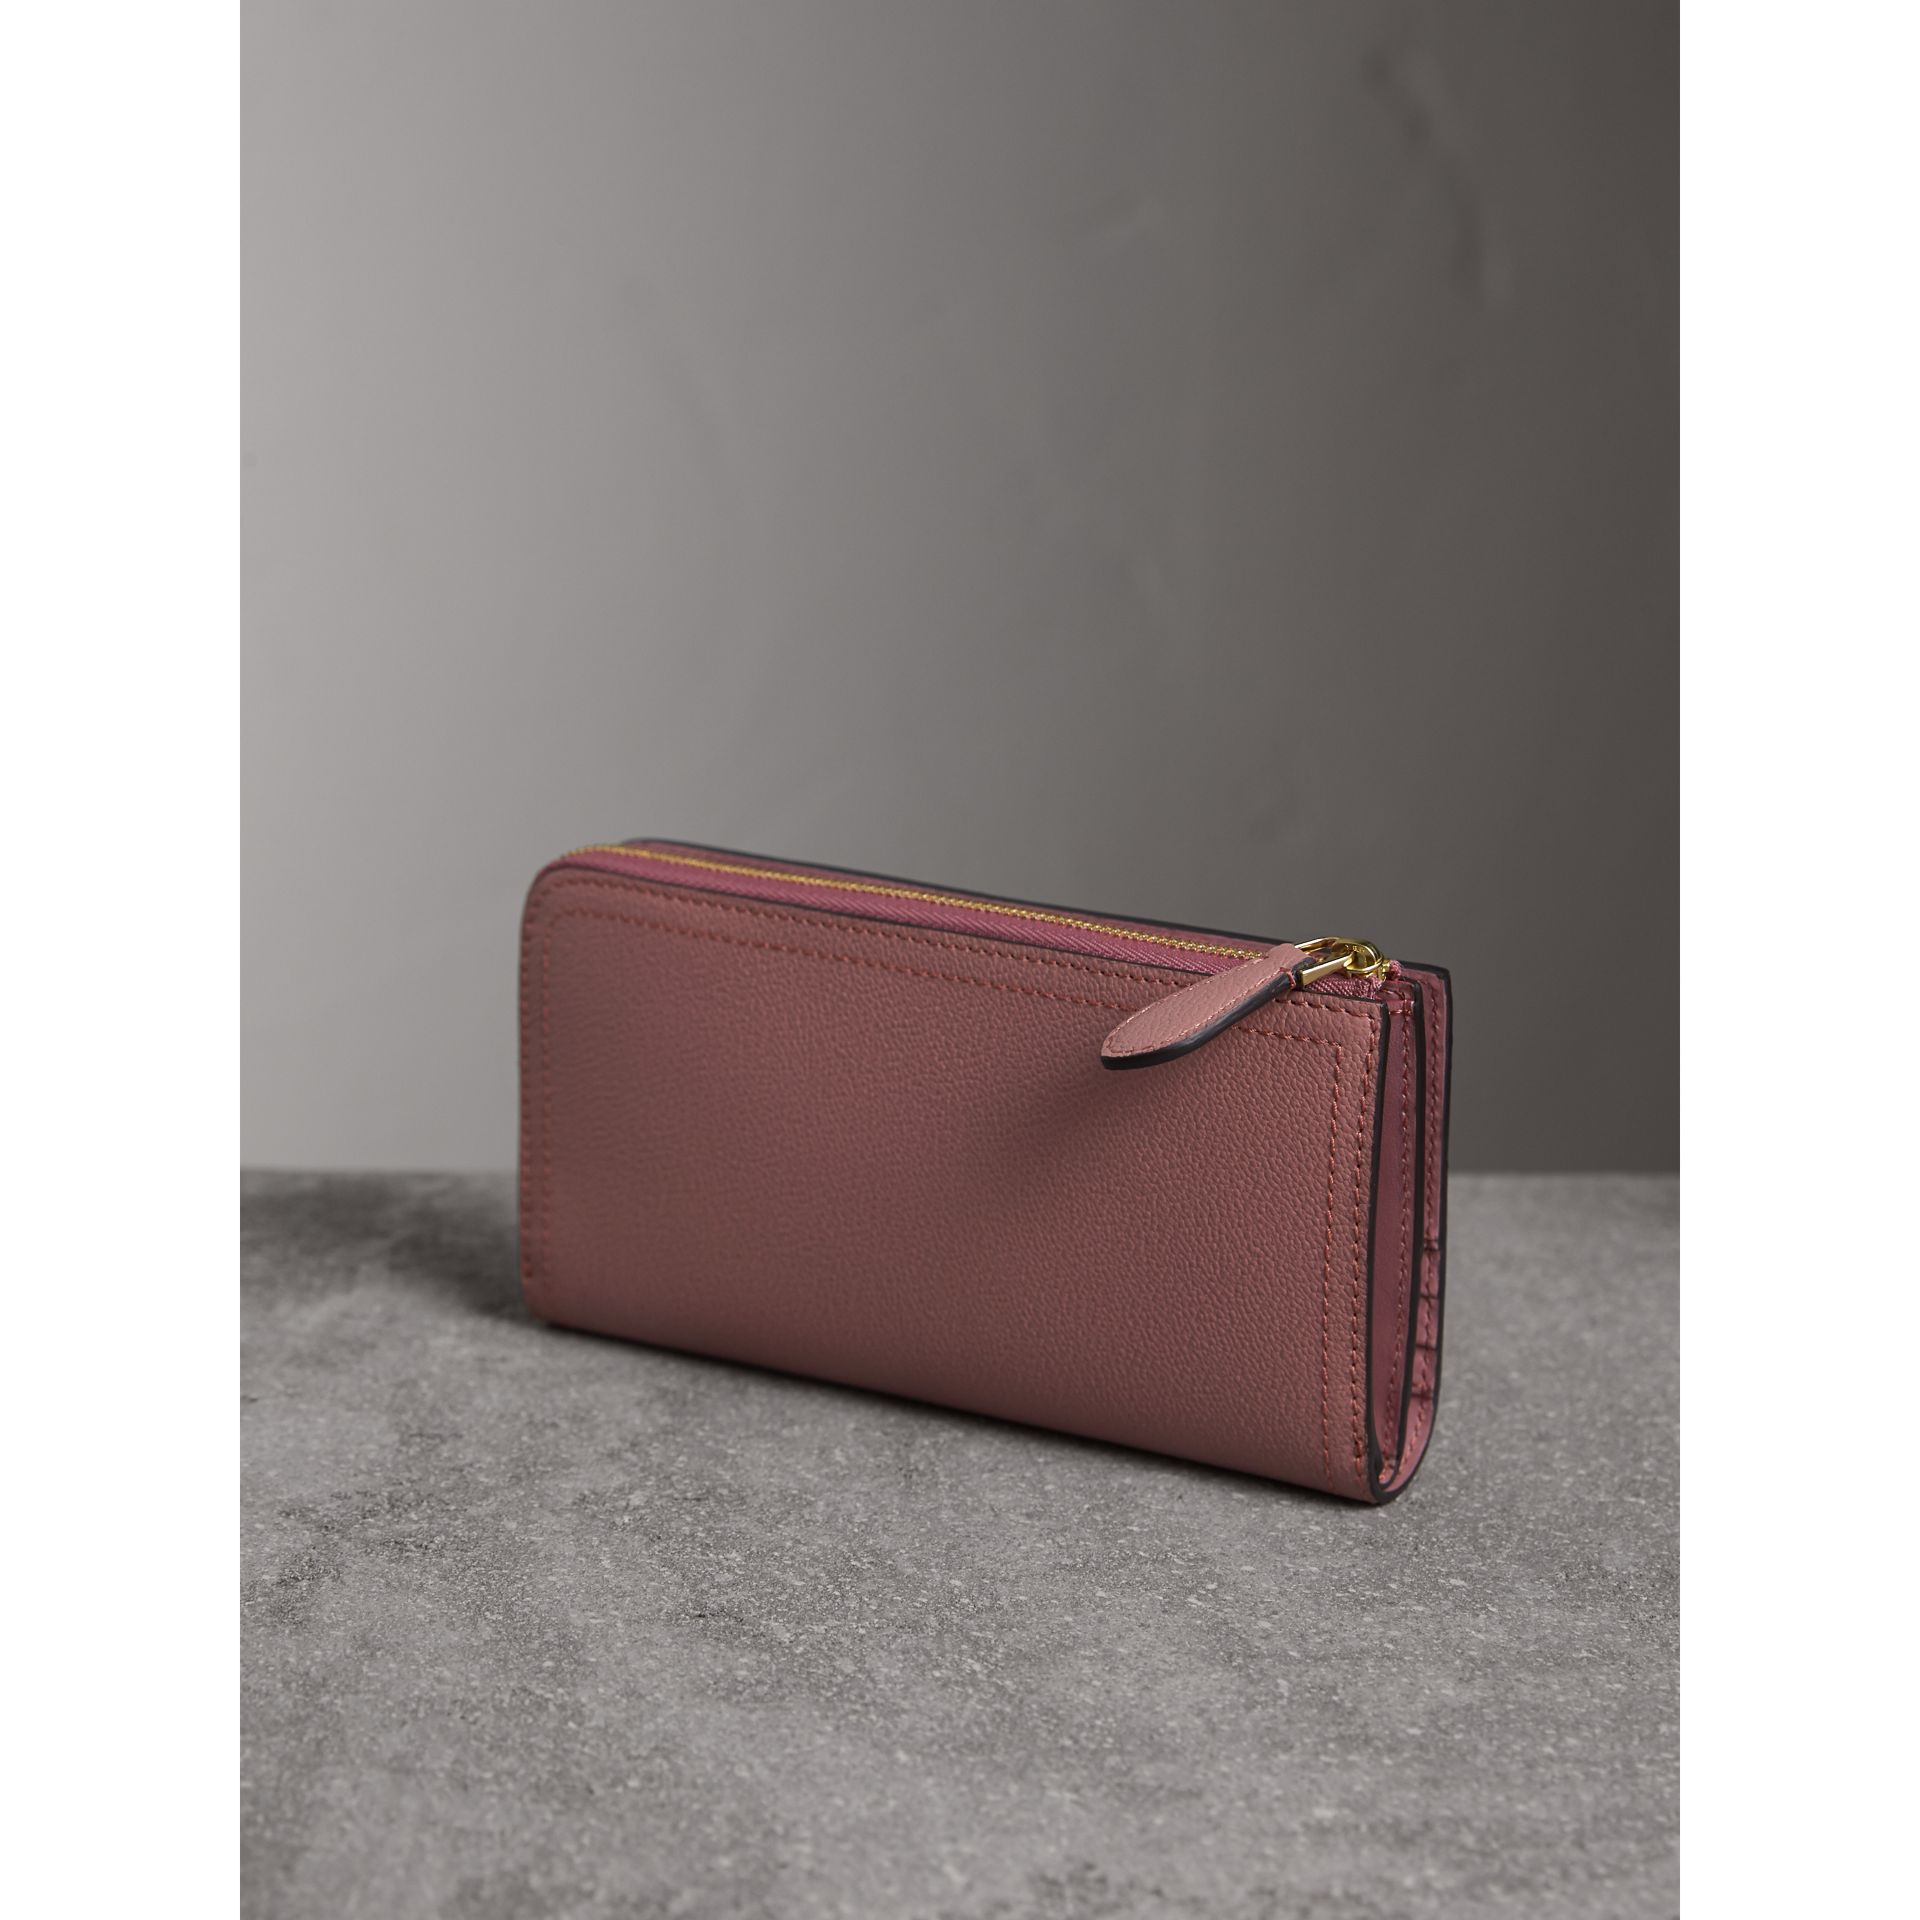 Grainy Leather Ziparound Wallet in Dusty Pink - Women | Burberry - gallery image 3